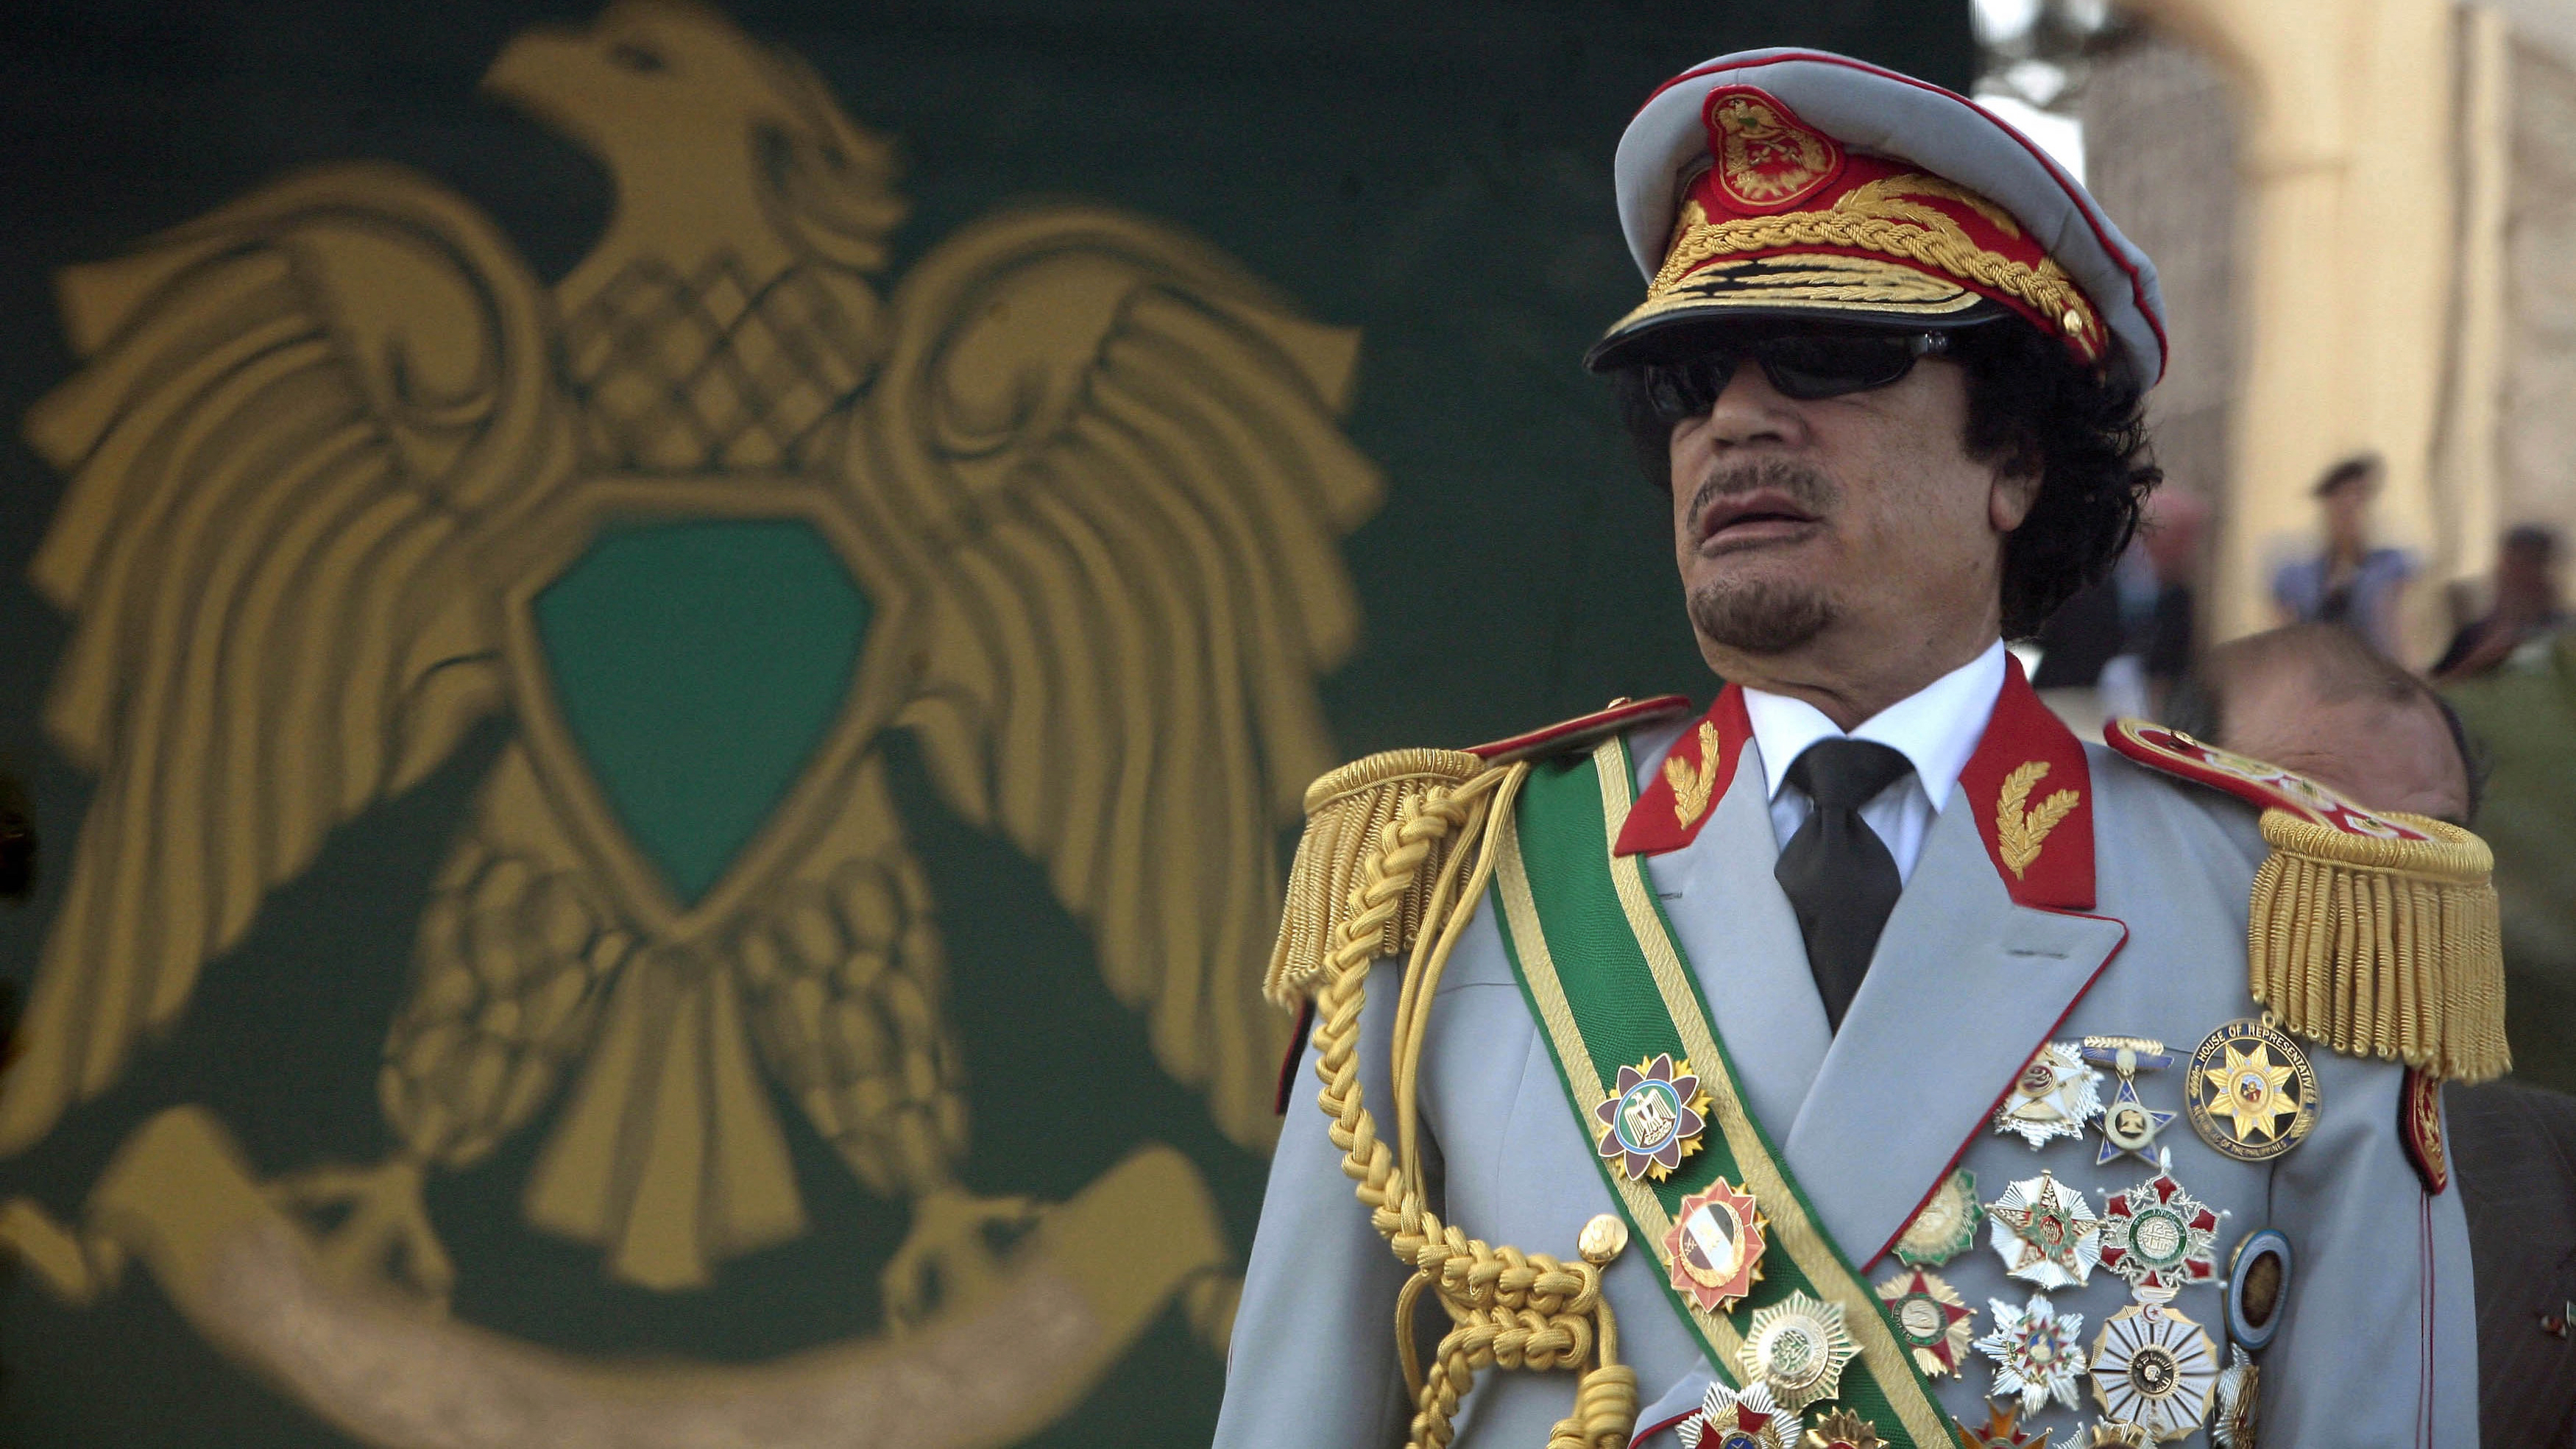 Libya's leader Muammar Gaddafi attends a celebration of the 40th anniversary of his coming to power at the Green Square in Tripoli September 1, 2009.  REUTERS/Zohra Bensemra  (LIBYA ANNIVERSARY POLITICS IMAGES OF THE DAY) - RTR27C8I